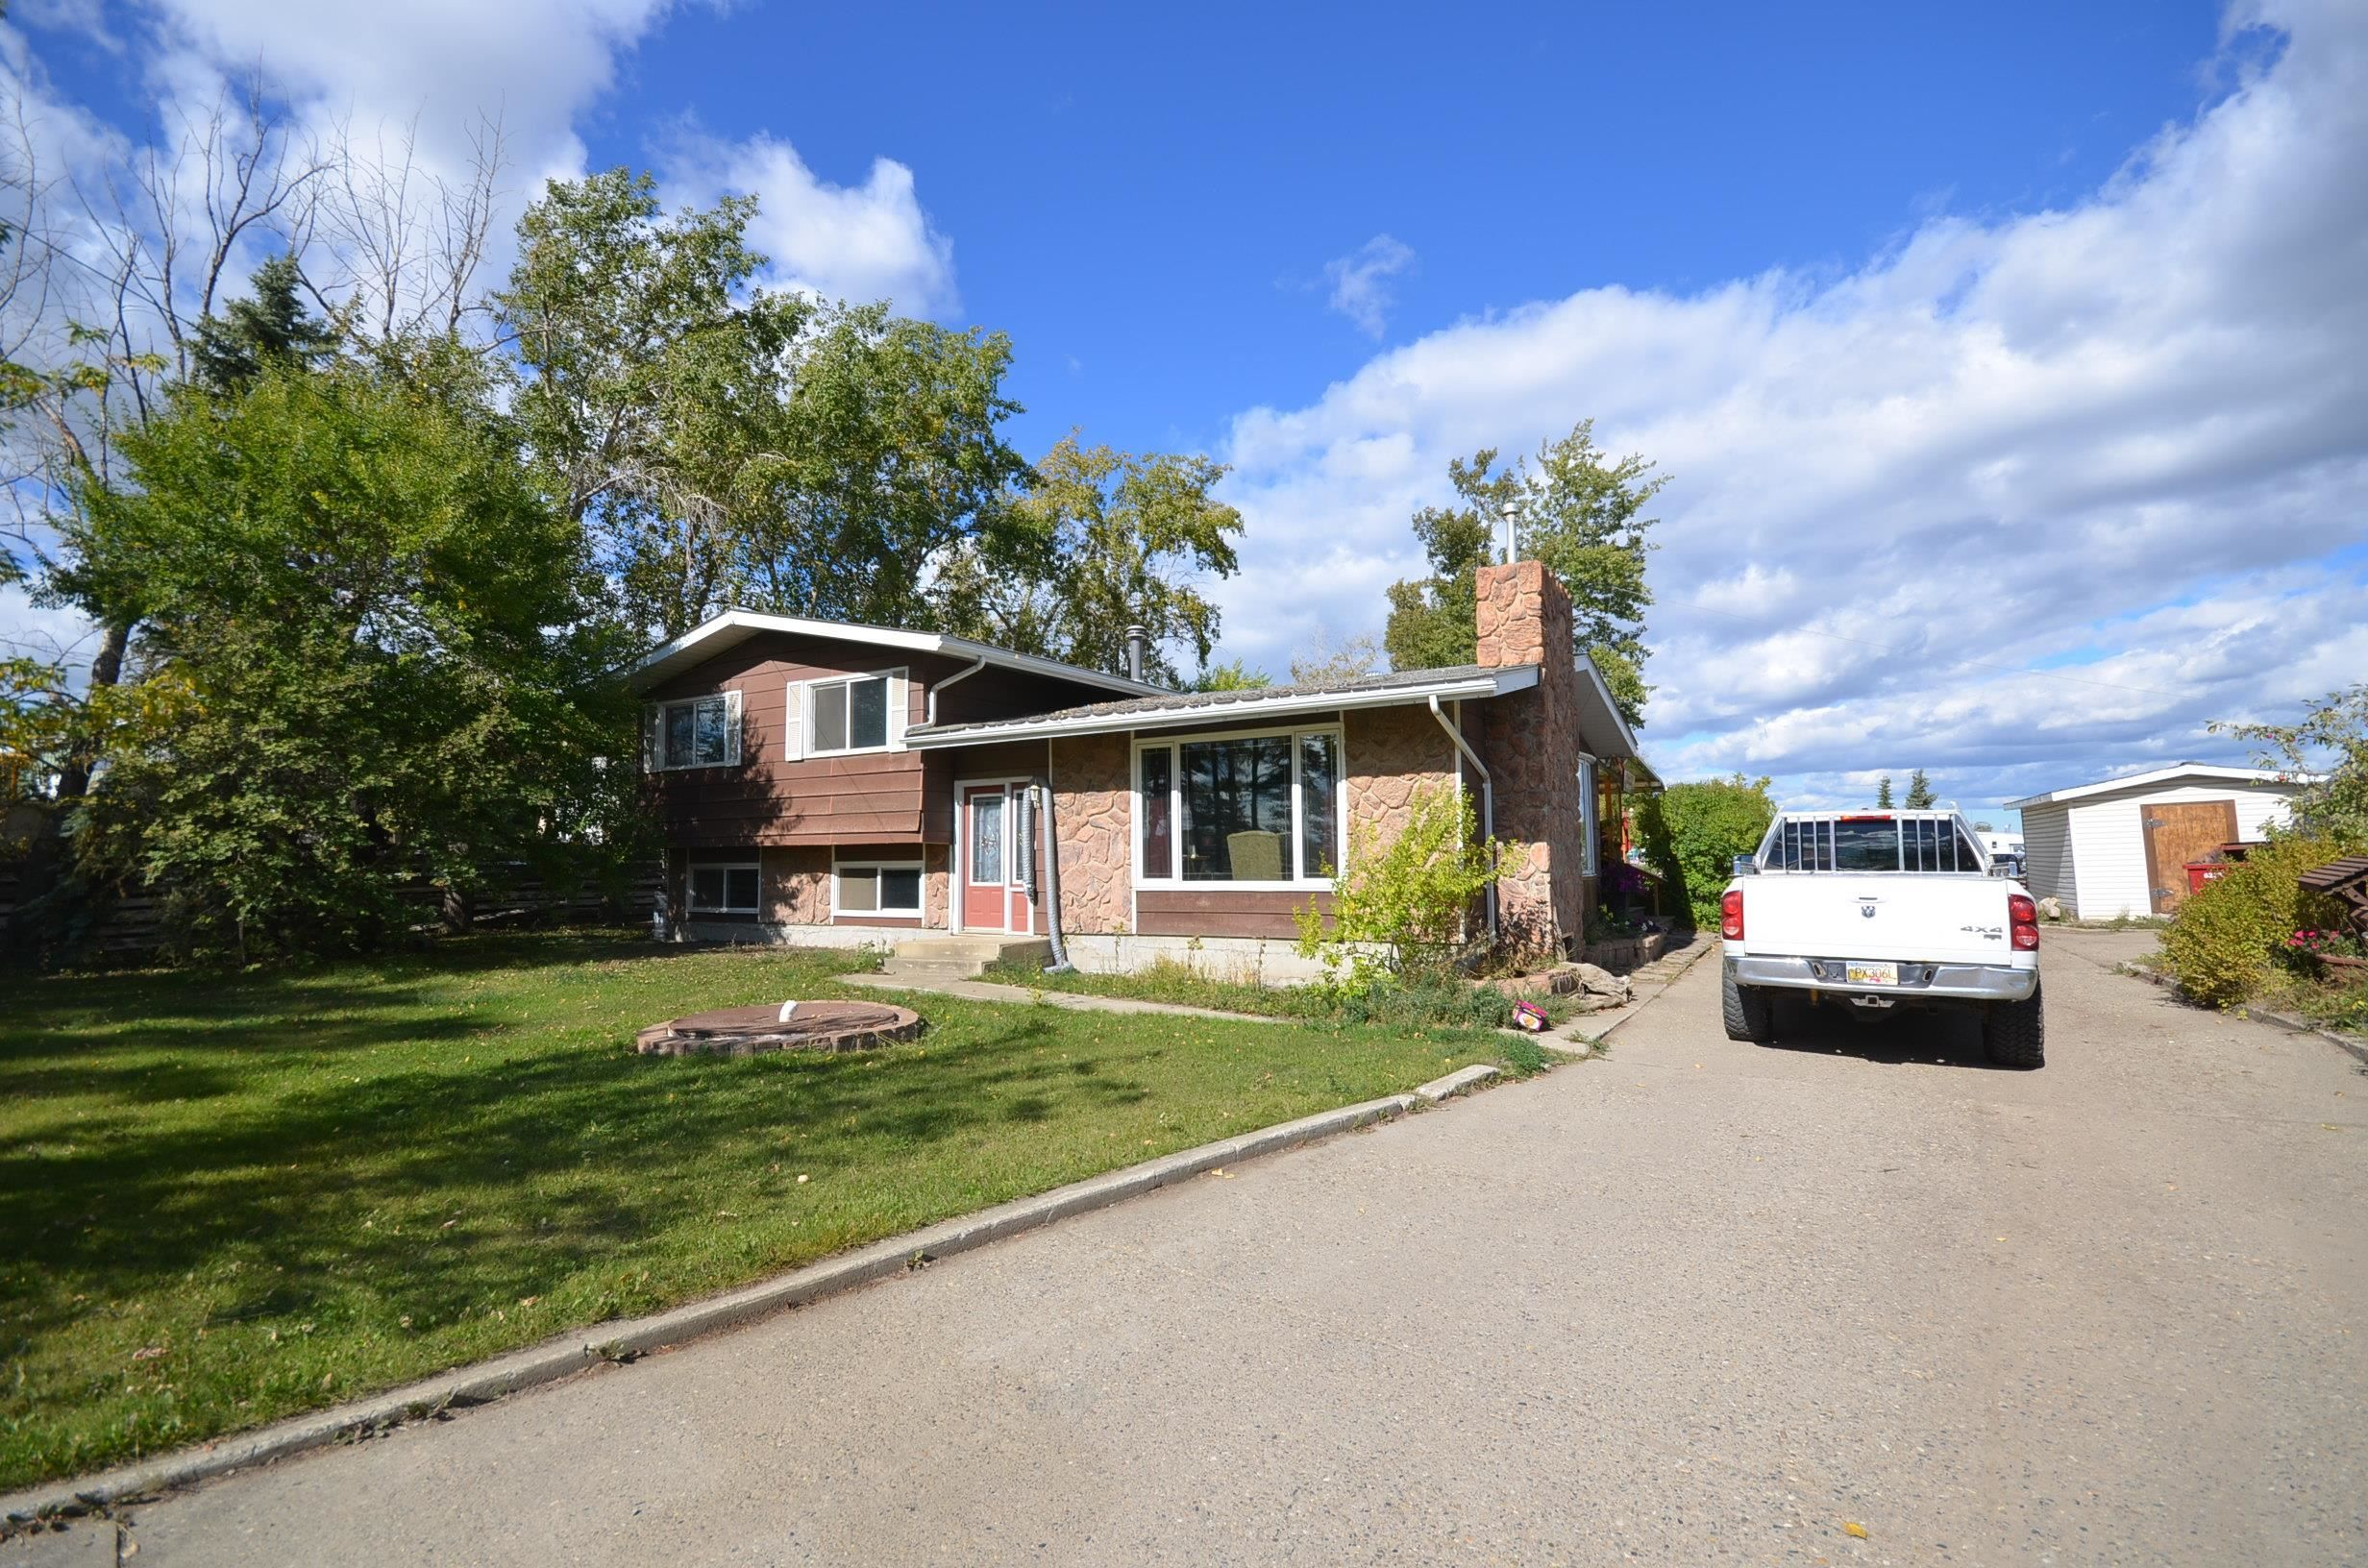 """Main Photo: 6486 AIRPORT Road in Fort St. John: Fort St. John - Rural E 100th House for sale in """"AIRPORT ROAD"""" (Fort St. John (Zone 60))  : MLS®# R2616659"""